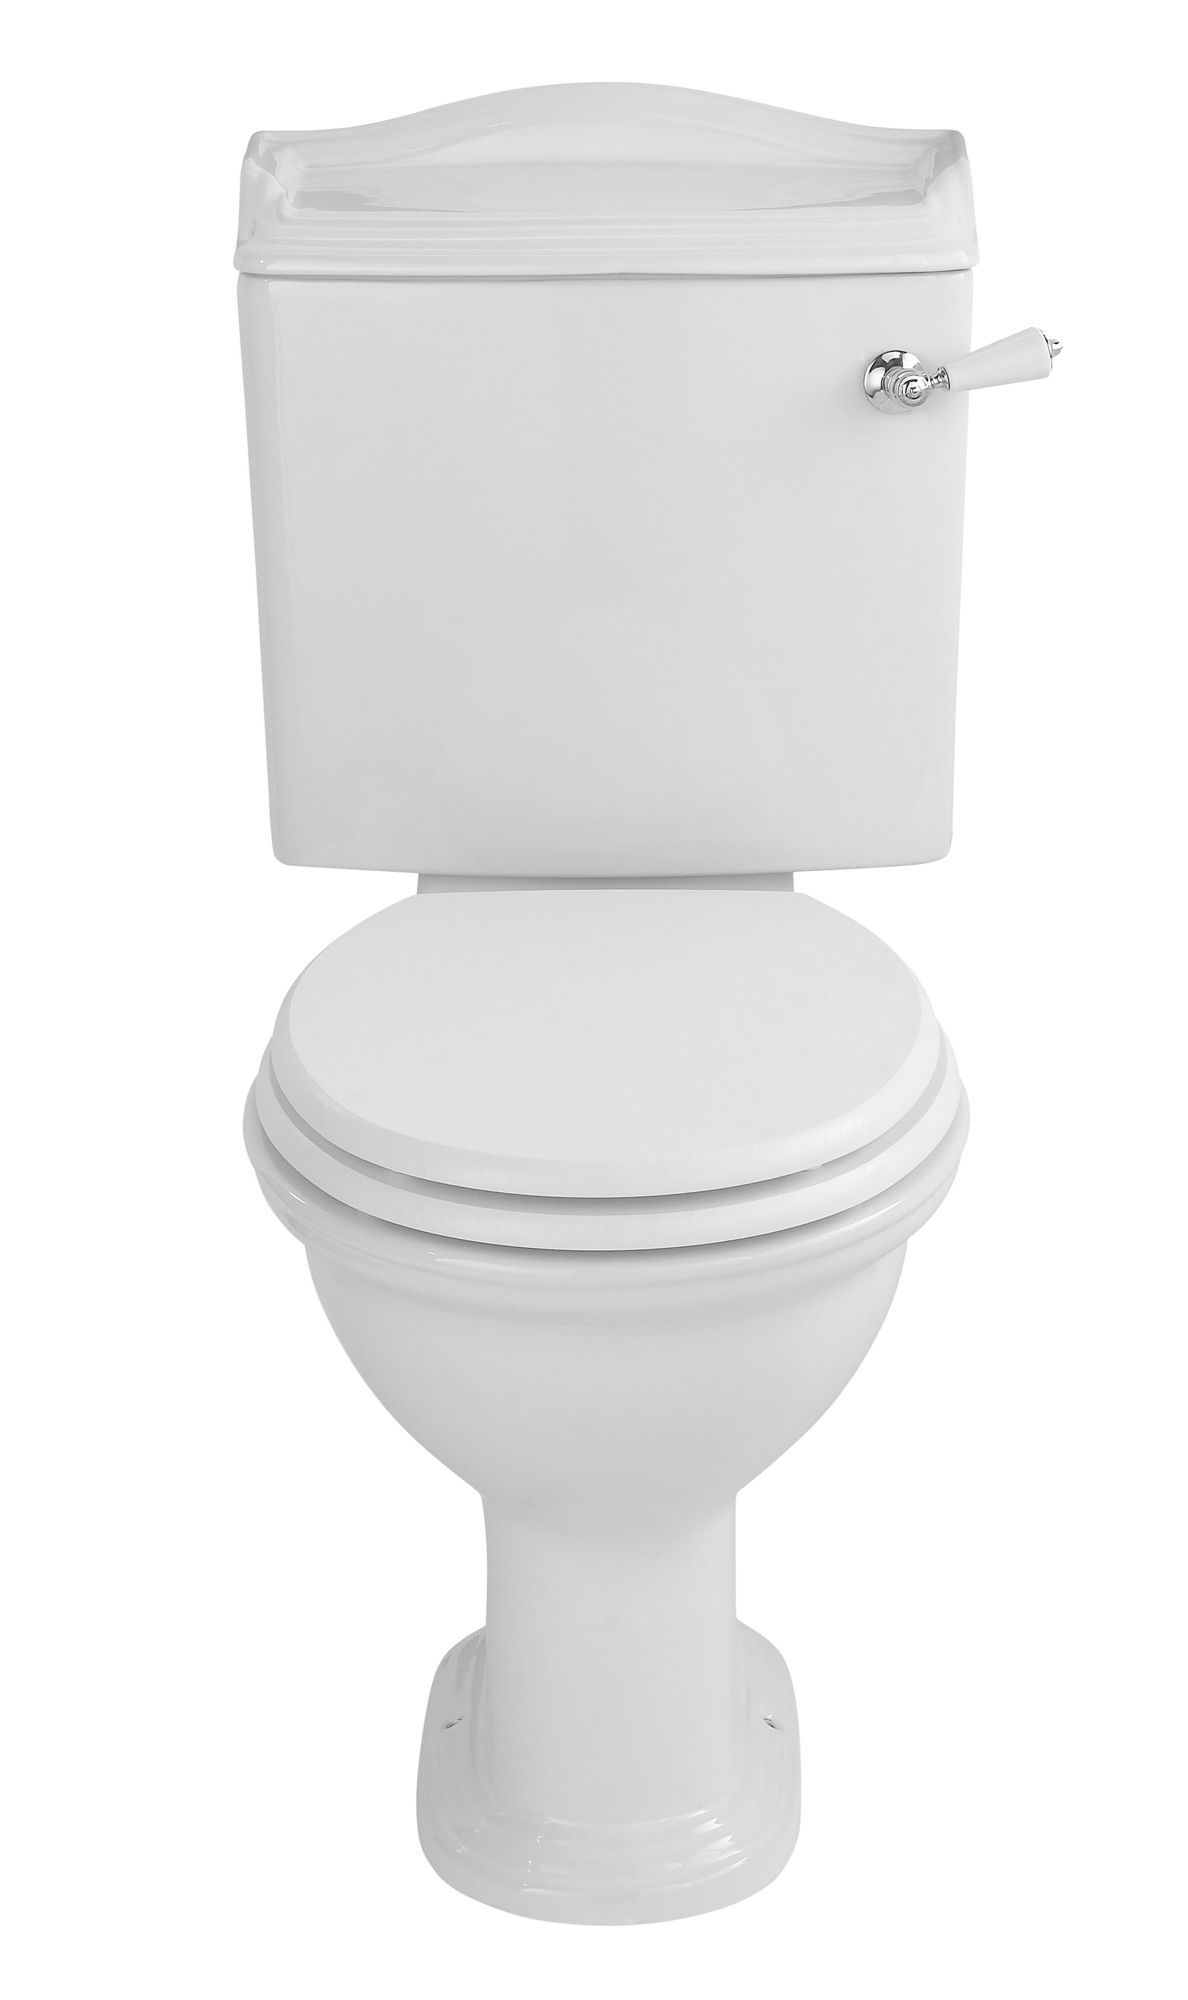 Cooke Lewis Montague Modern Close Coupled Toilet With Standard